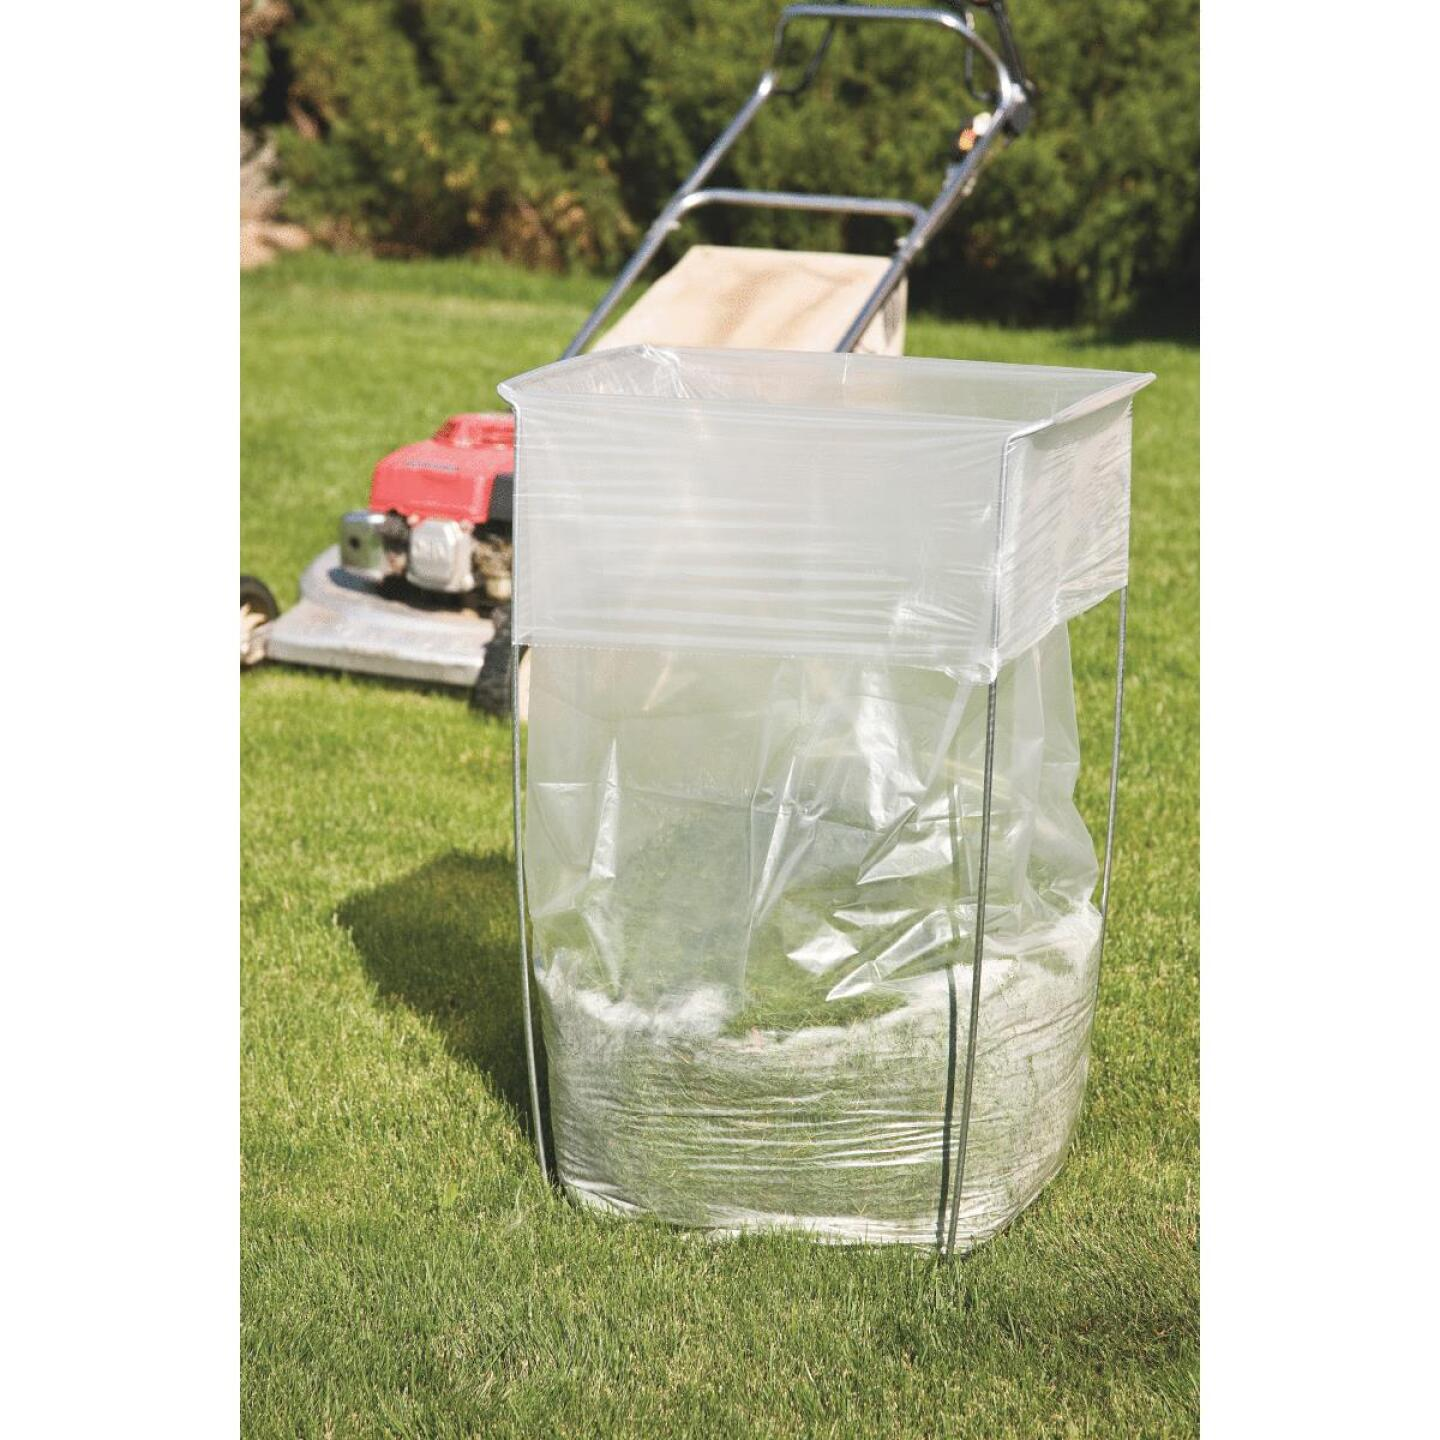 Bag Buddy 39 to 45 Gal. Capacity Wire Frame Lawn & Yard Bag Holder Image 2